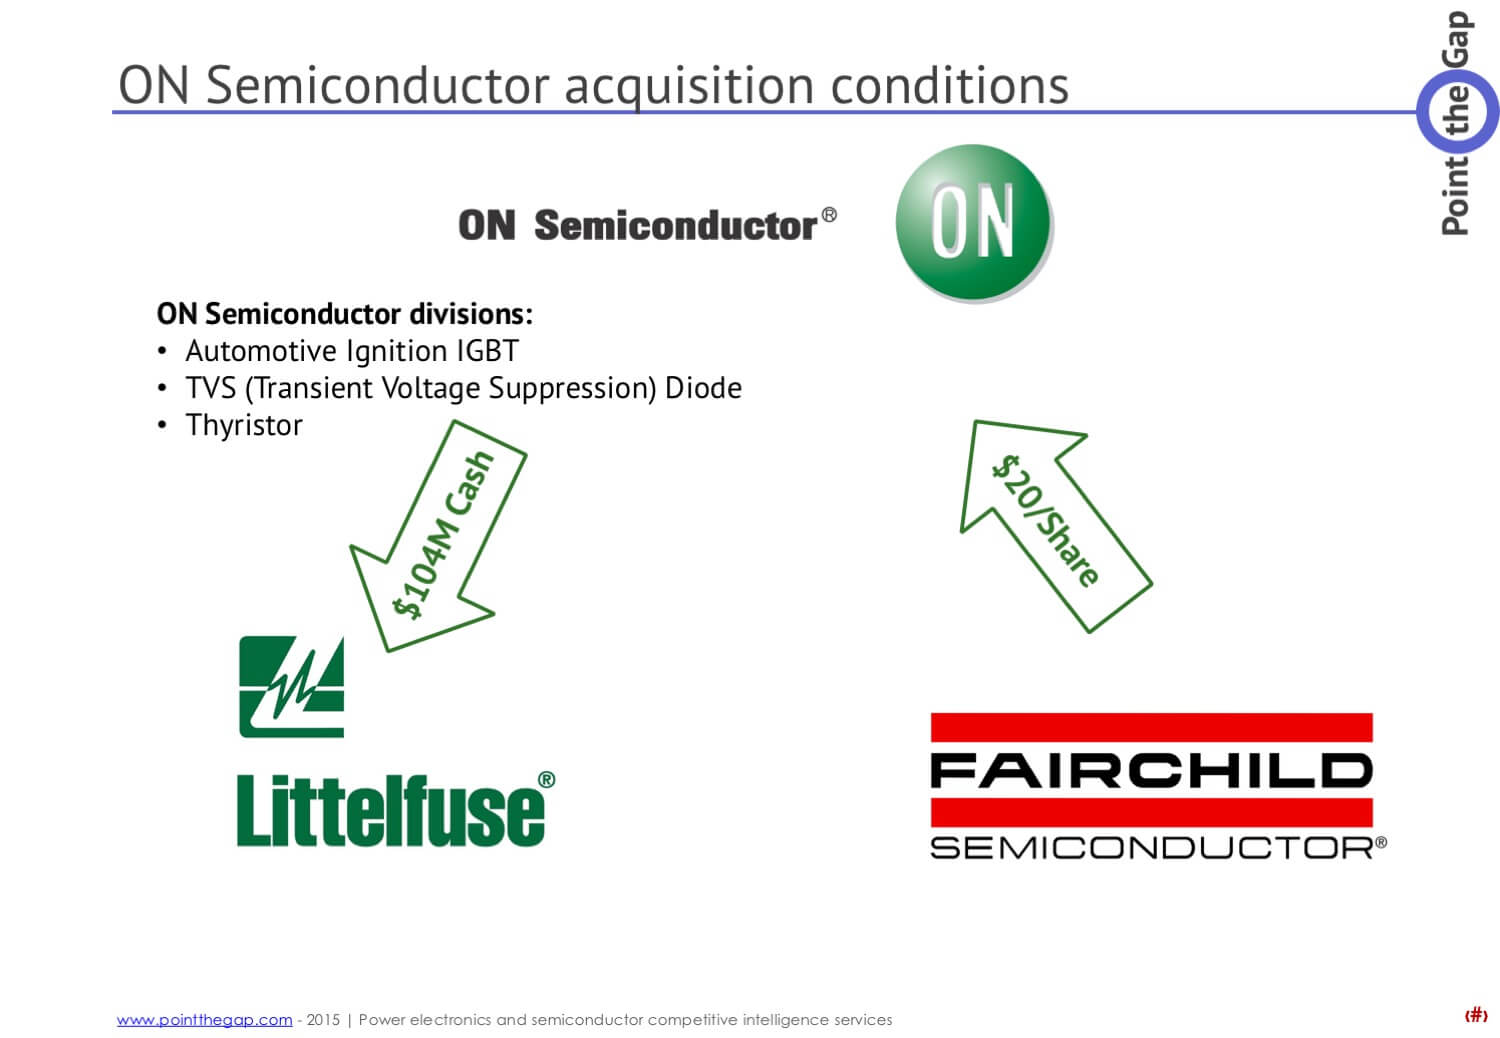 ON Semiconductor acquisitions conditions Fairchild Littelfuse